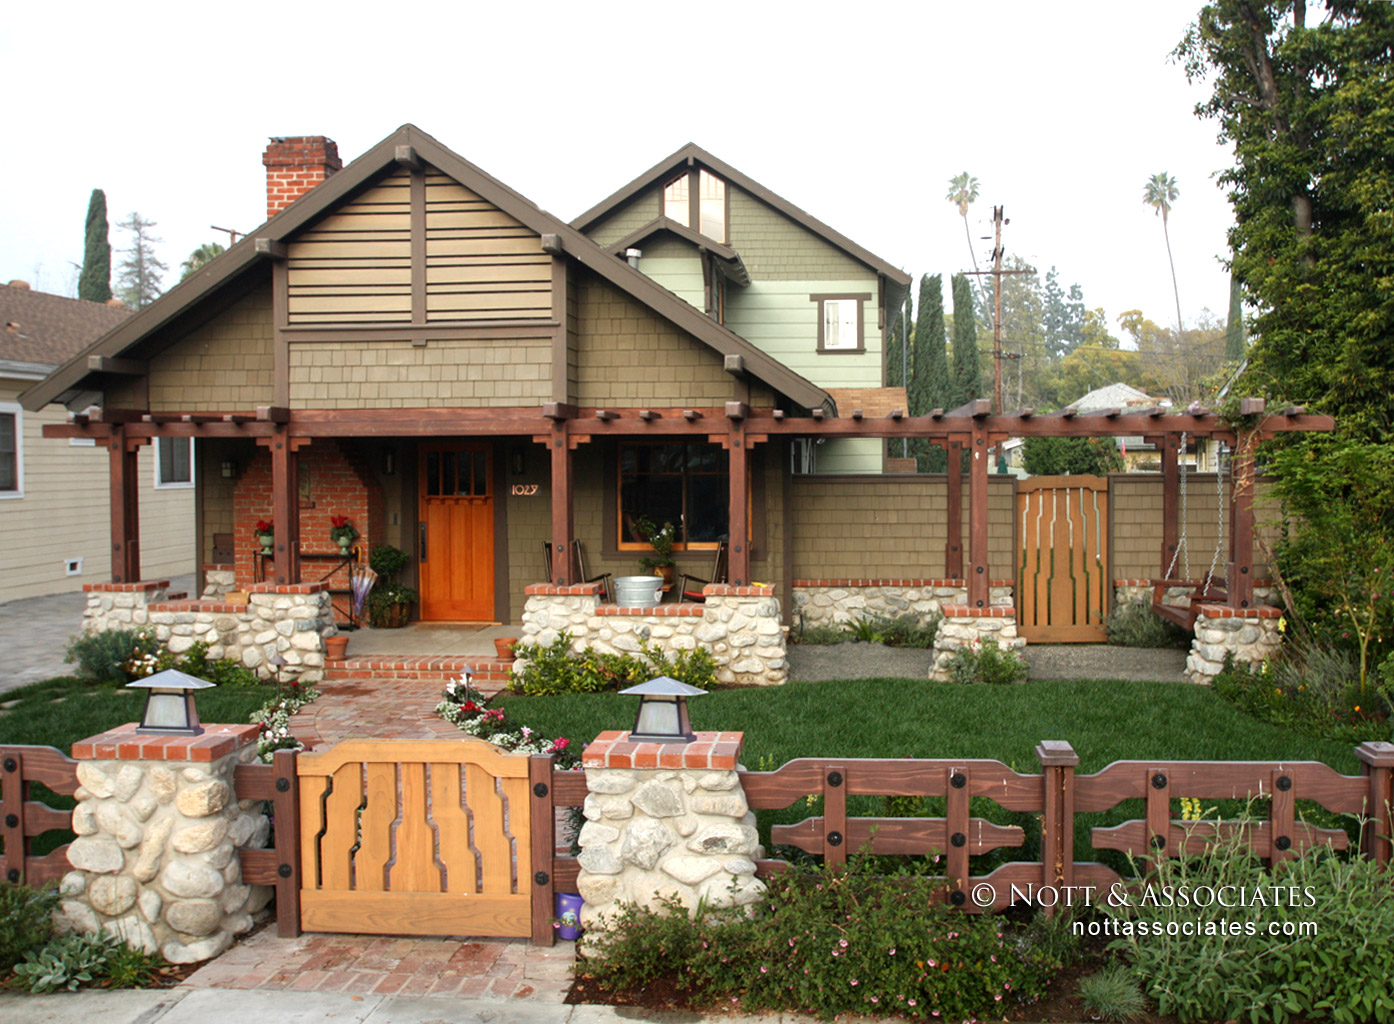 Restored Craftsman home with period details